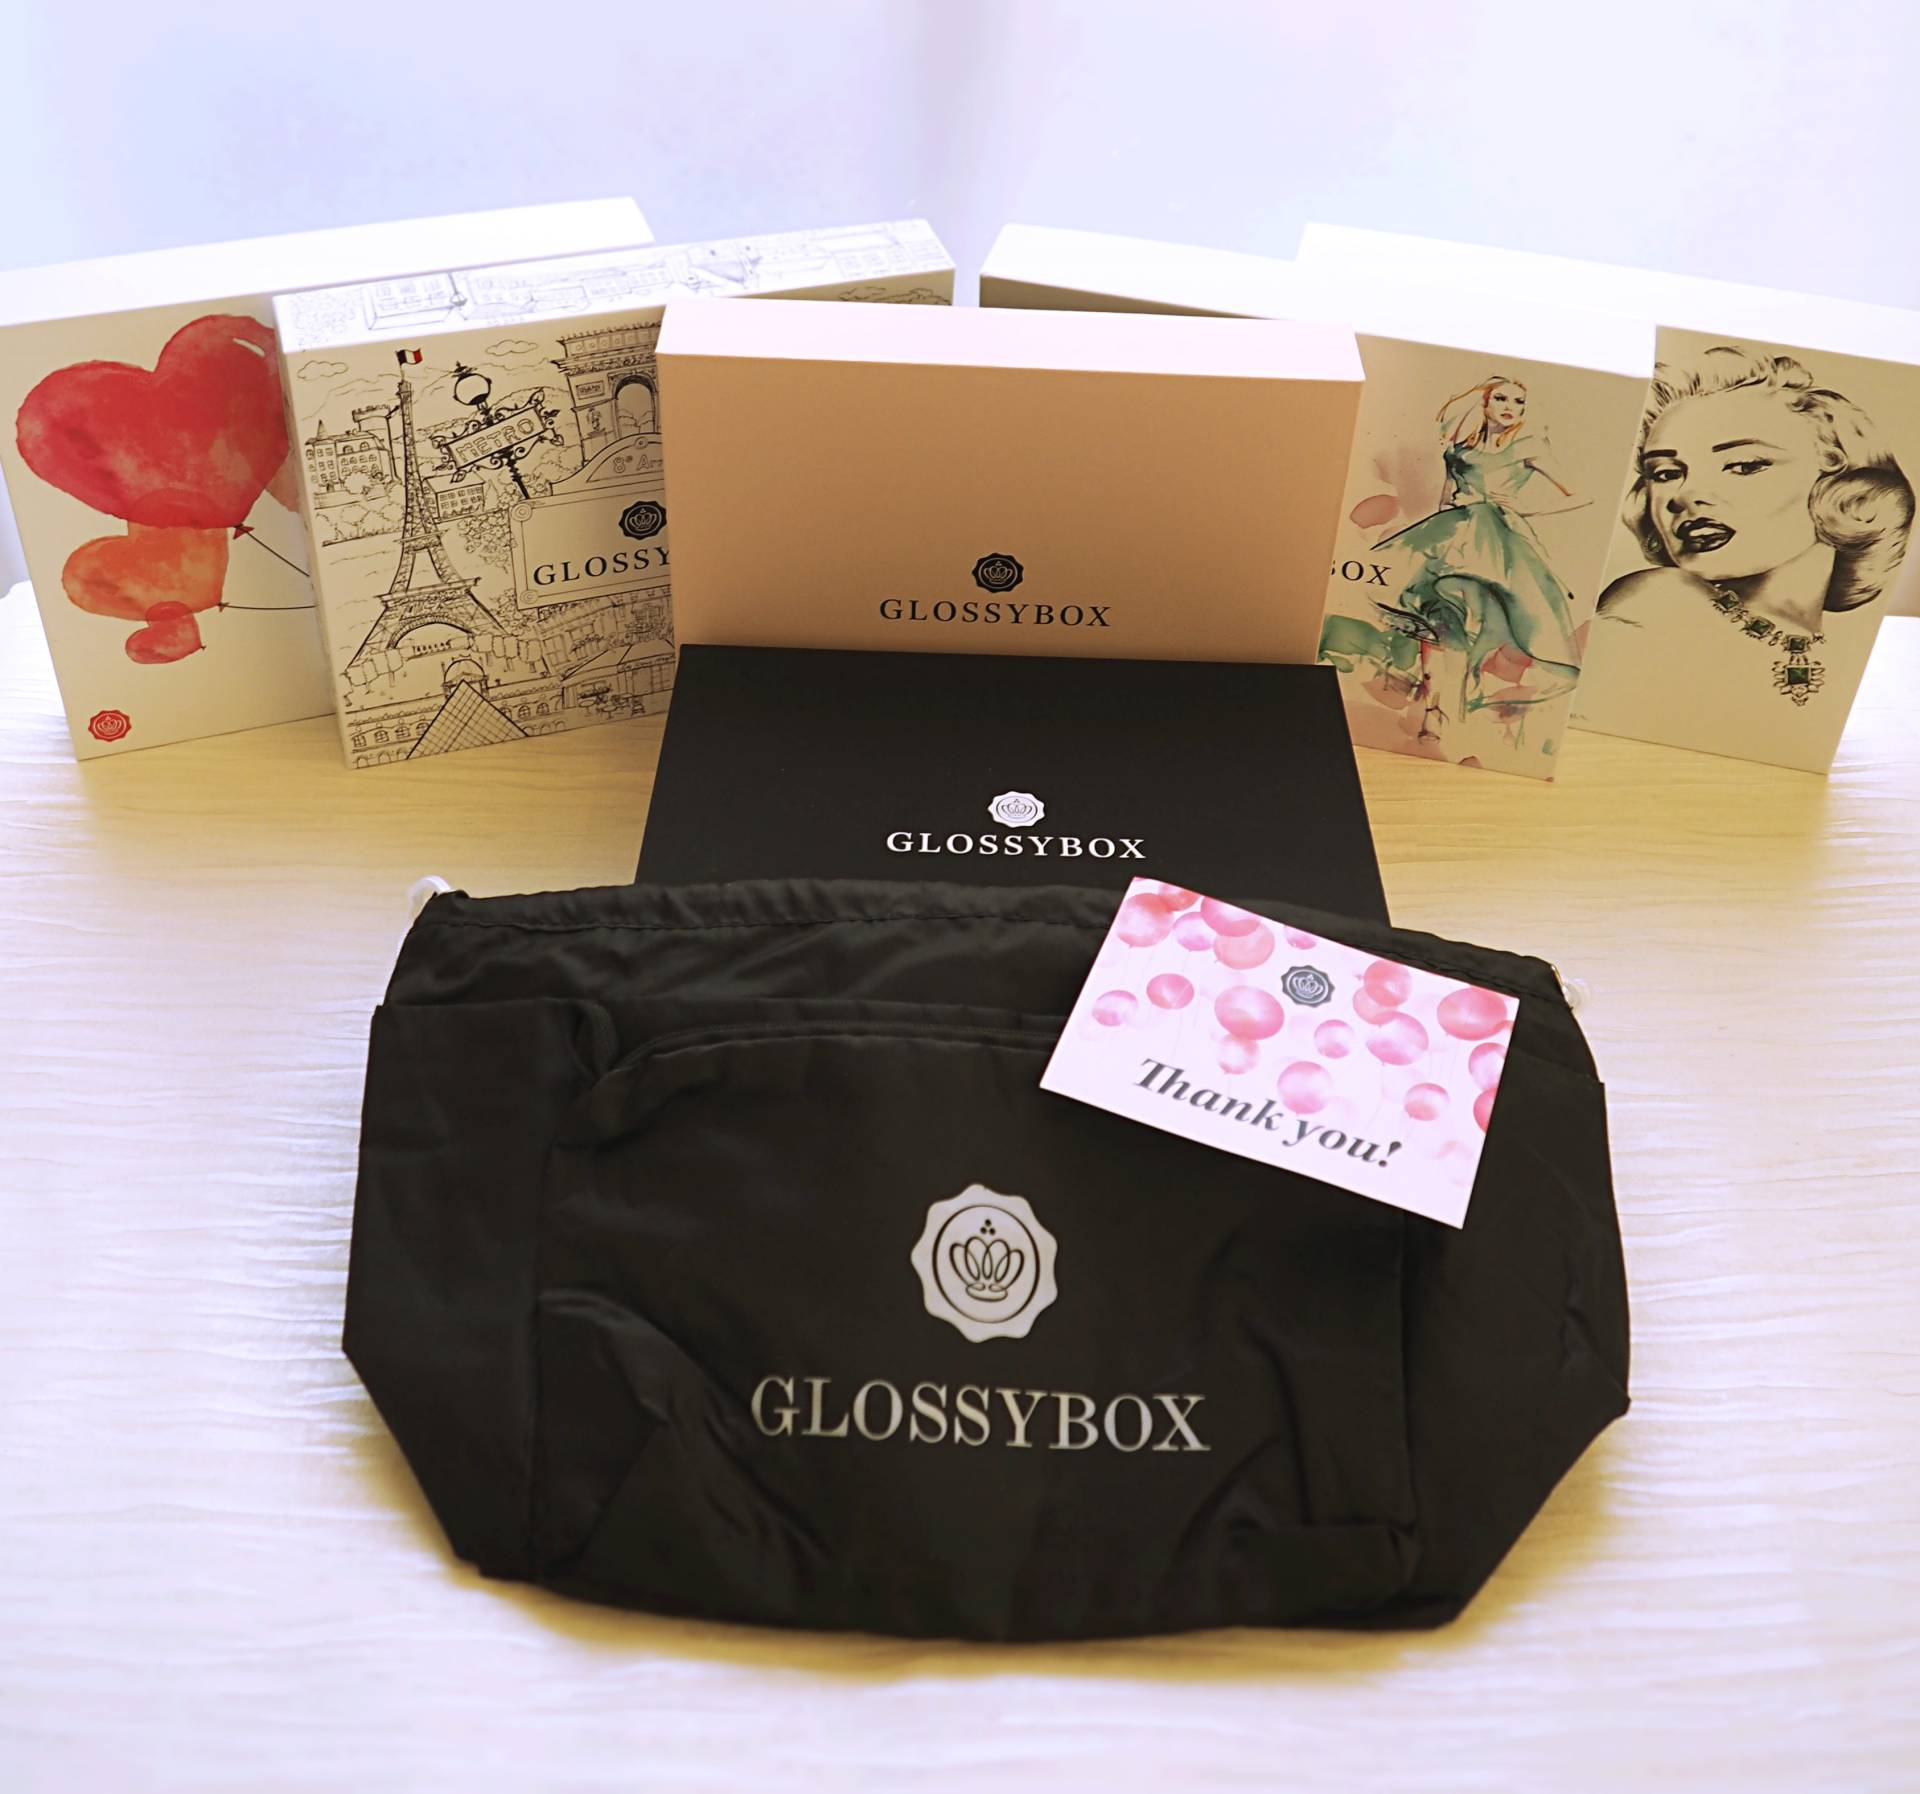 Glossybox Review – A Year with Glossybox